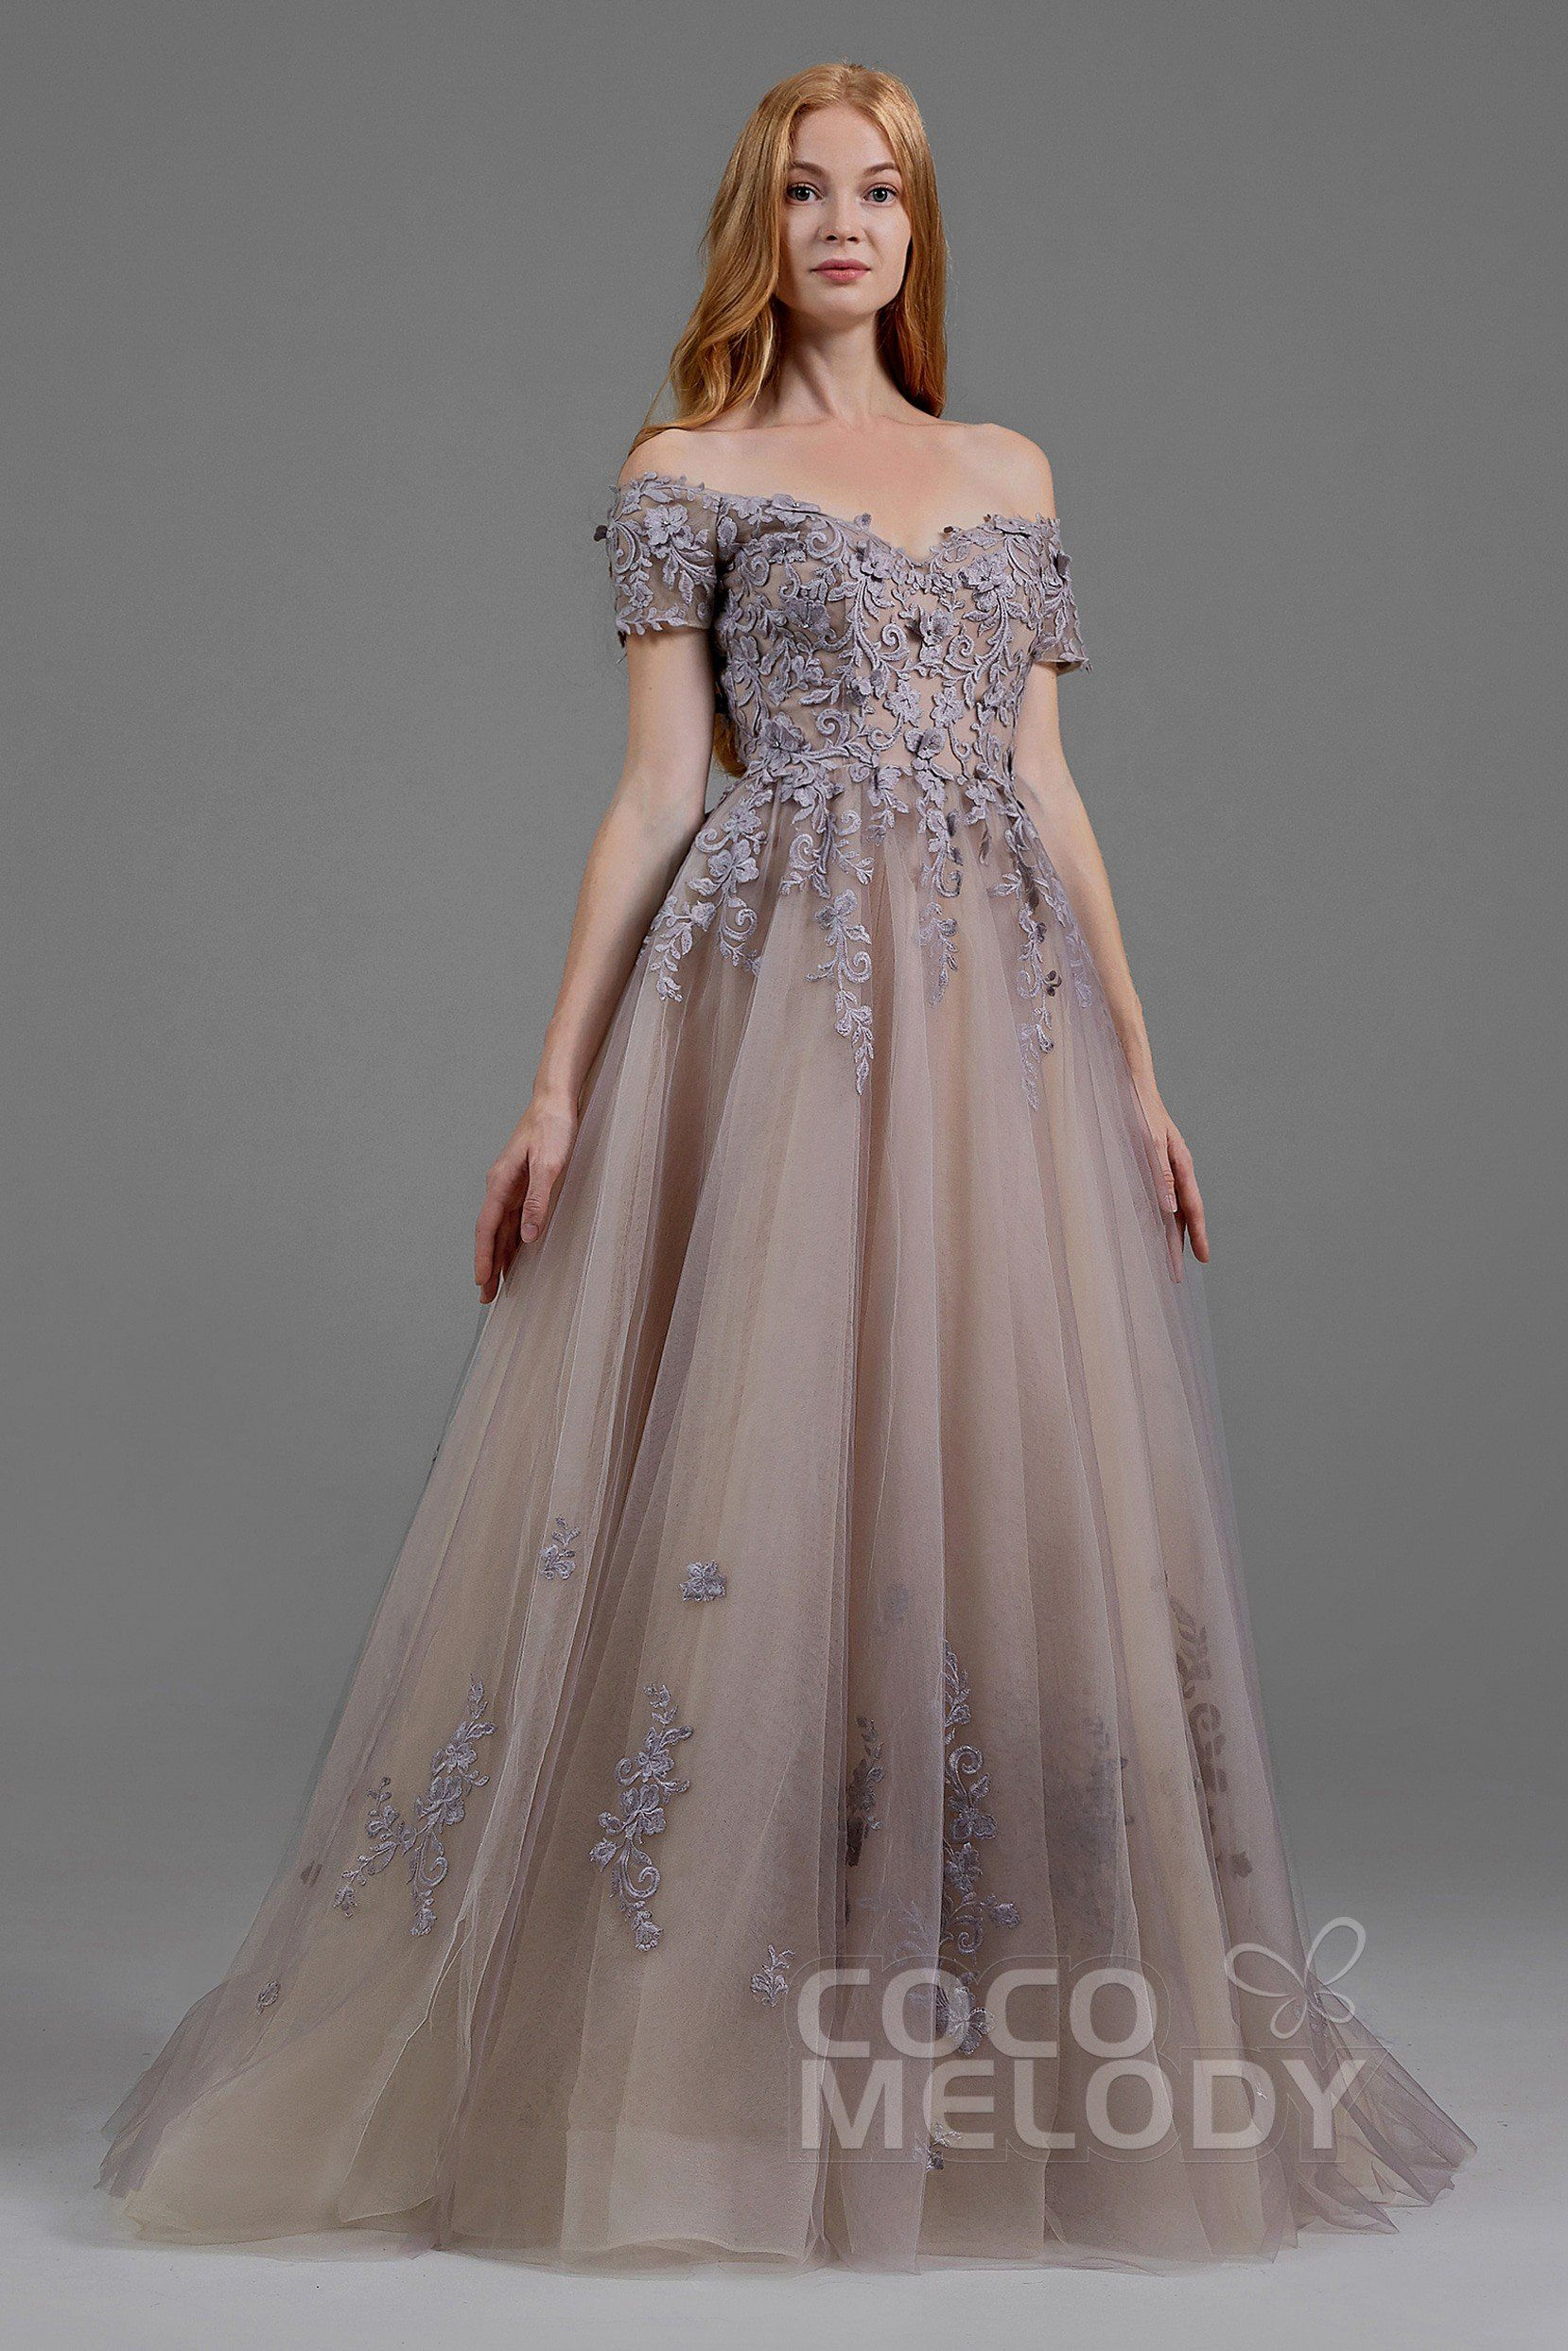 ec85045ef62 A-Line Sweep-Brush Train Tulle Gothic Wedding Dress LD5830 in 2019 ...